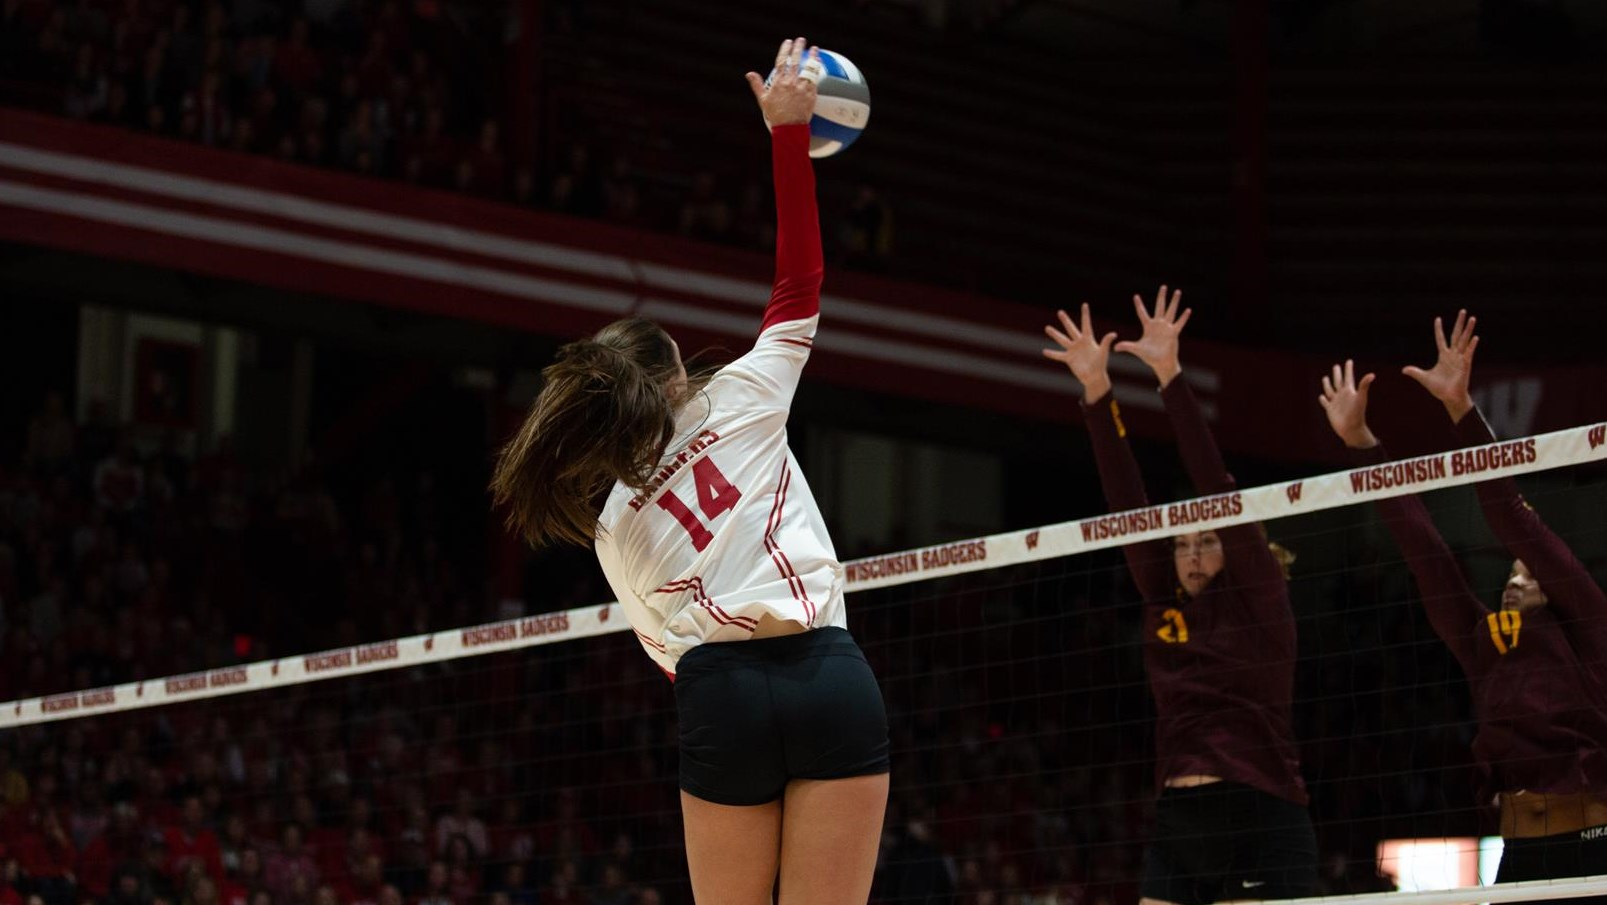 Madison Duello Volleyball Wisconsin Badgers